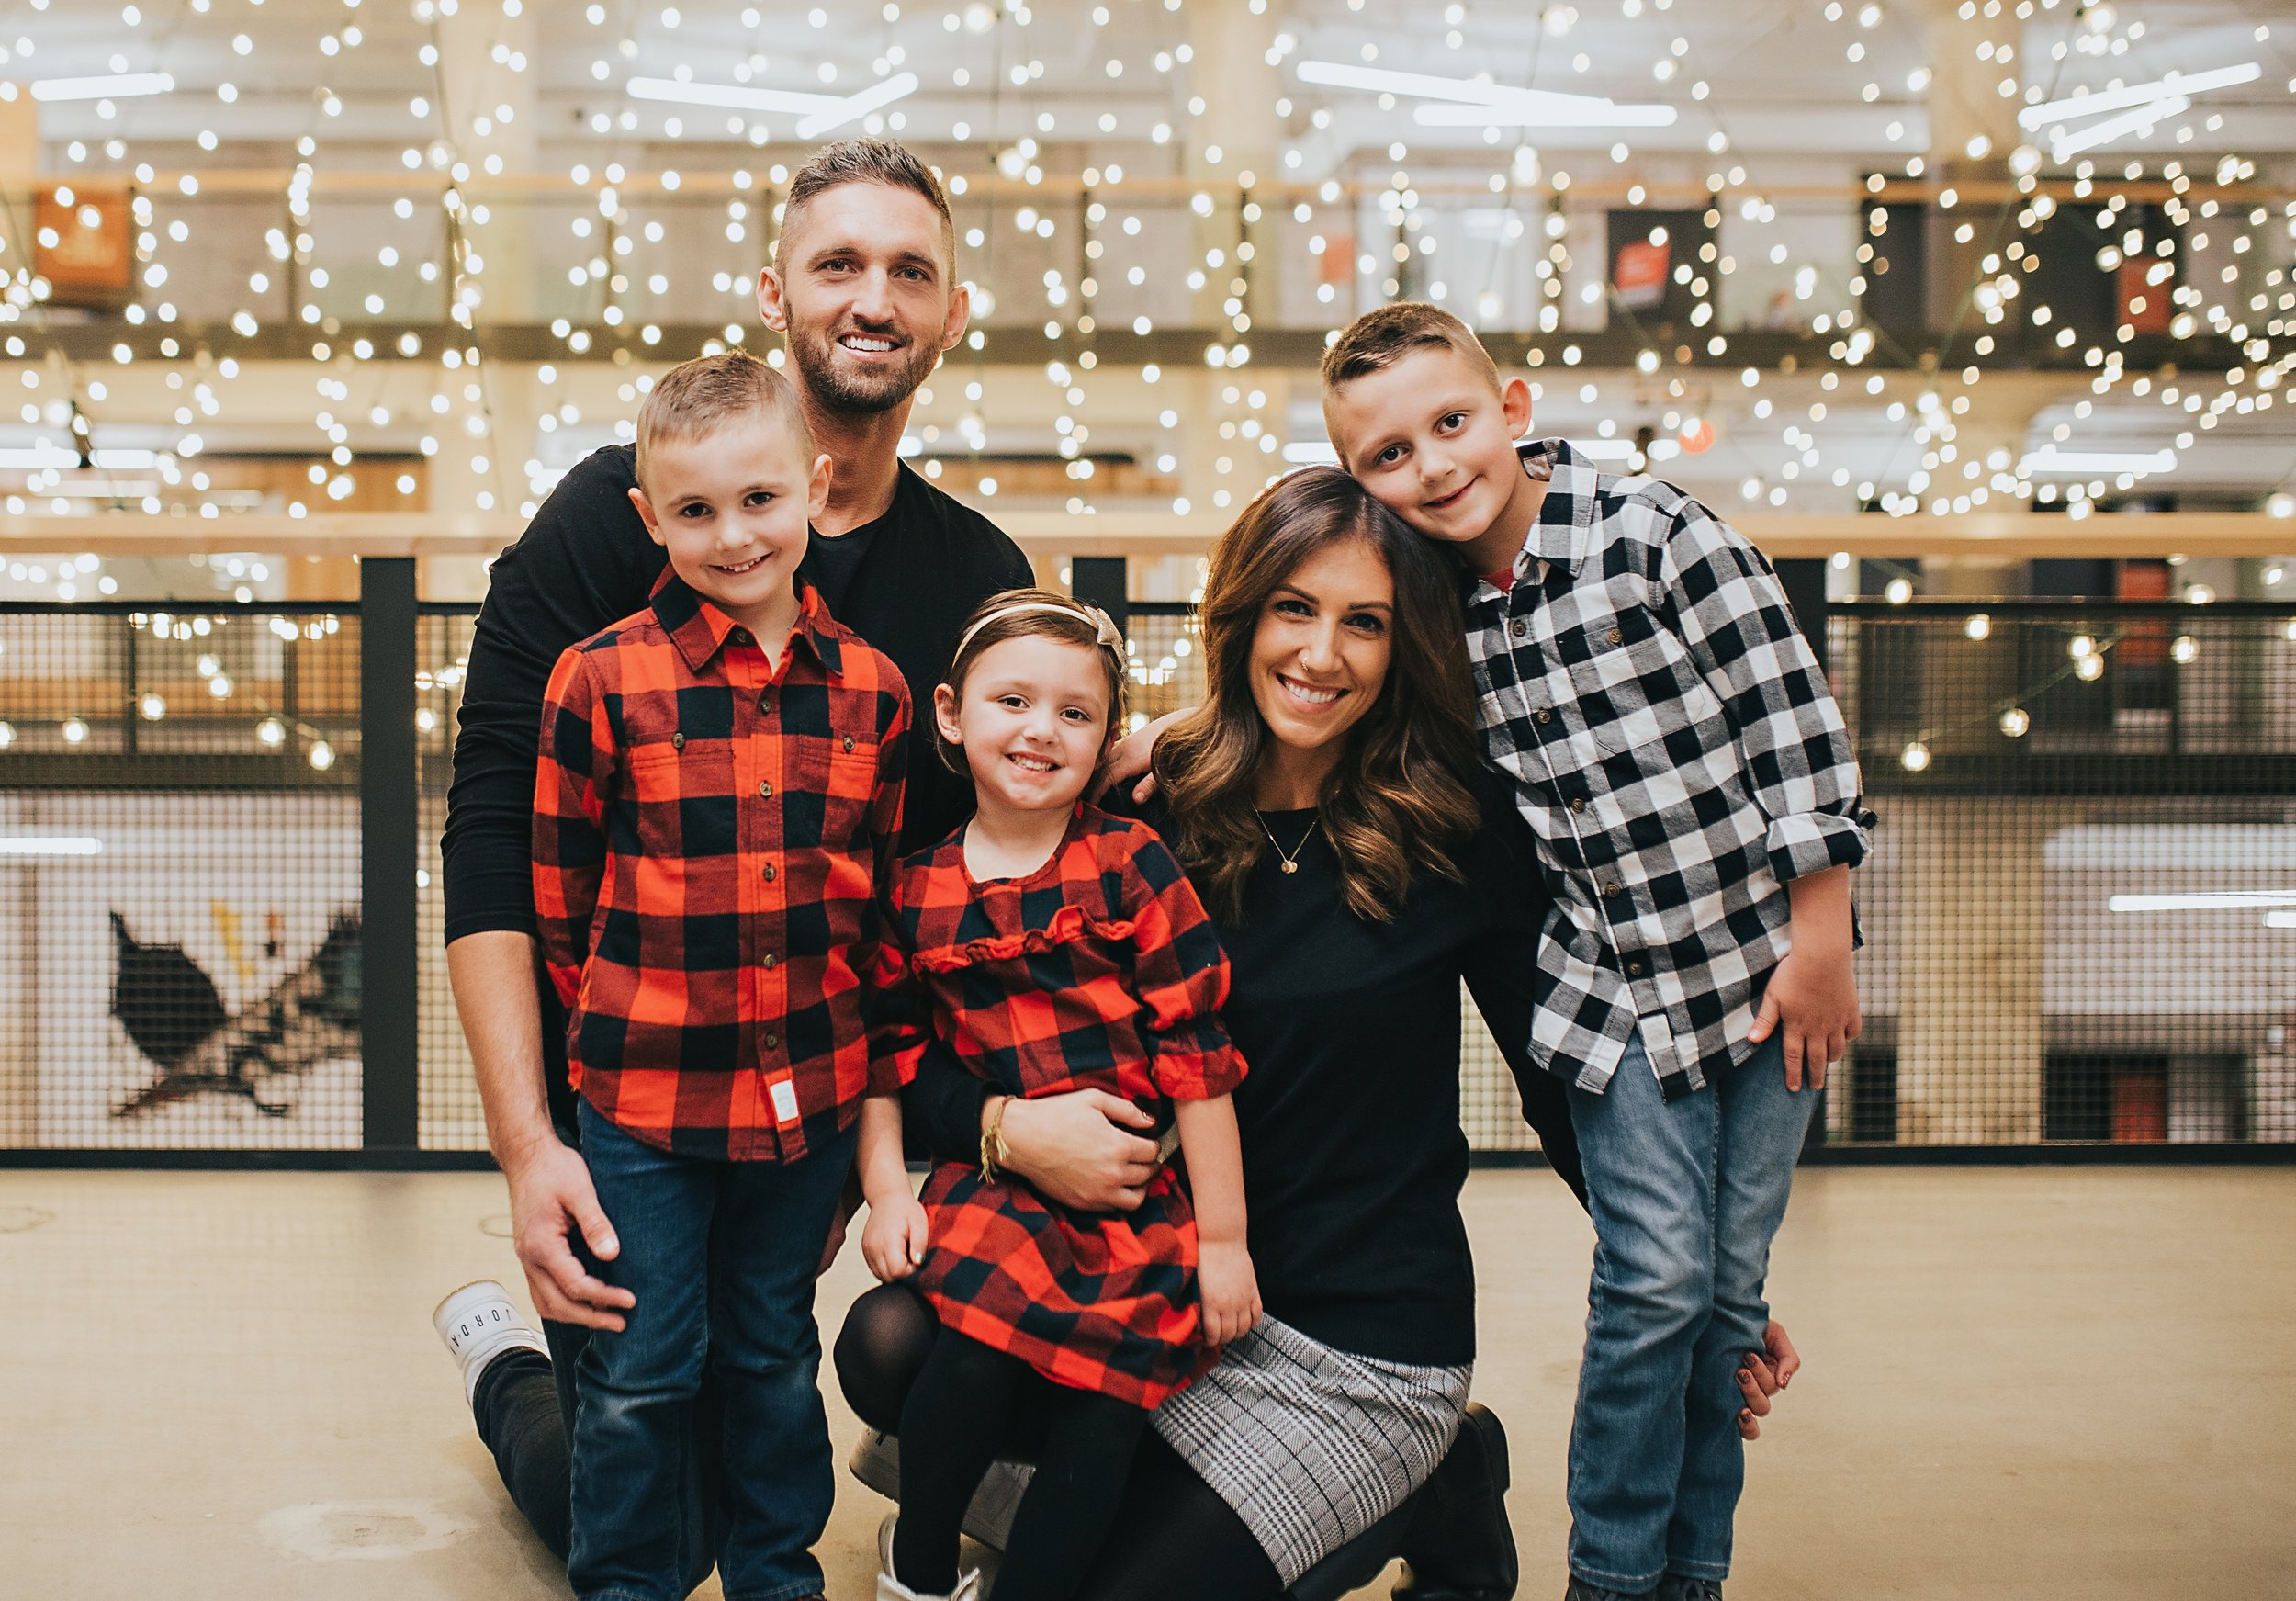 - Pastor Stevie and his wife Whitney have been married for almost 9 years and have three children, Finn (7), Judah (5), and Isla (4).